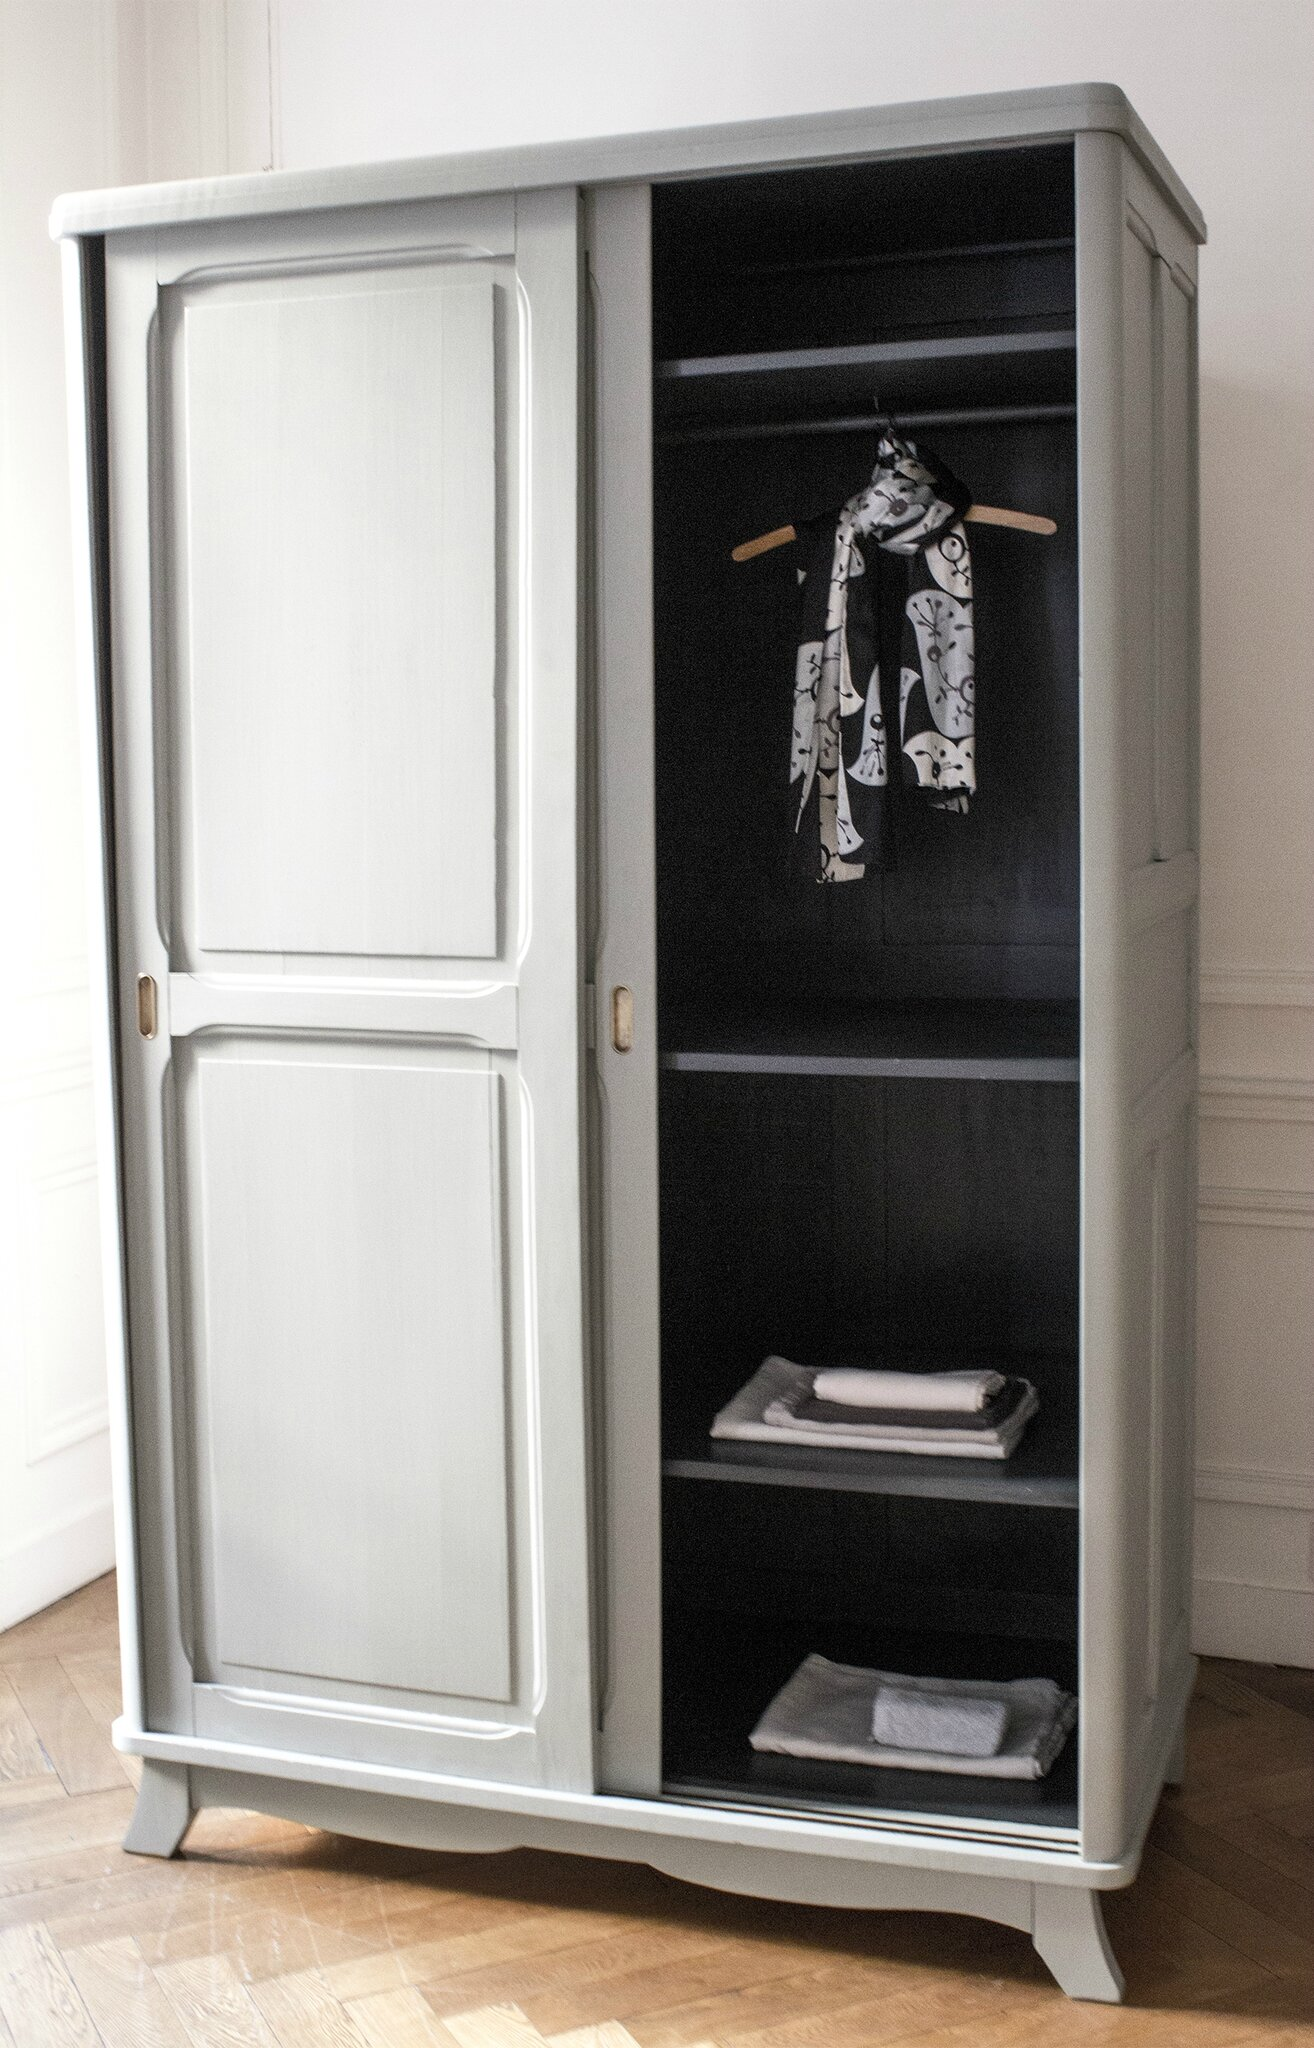 Grande armoire type parisienne TRENDY LITTLE